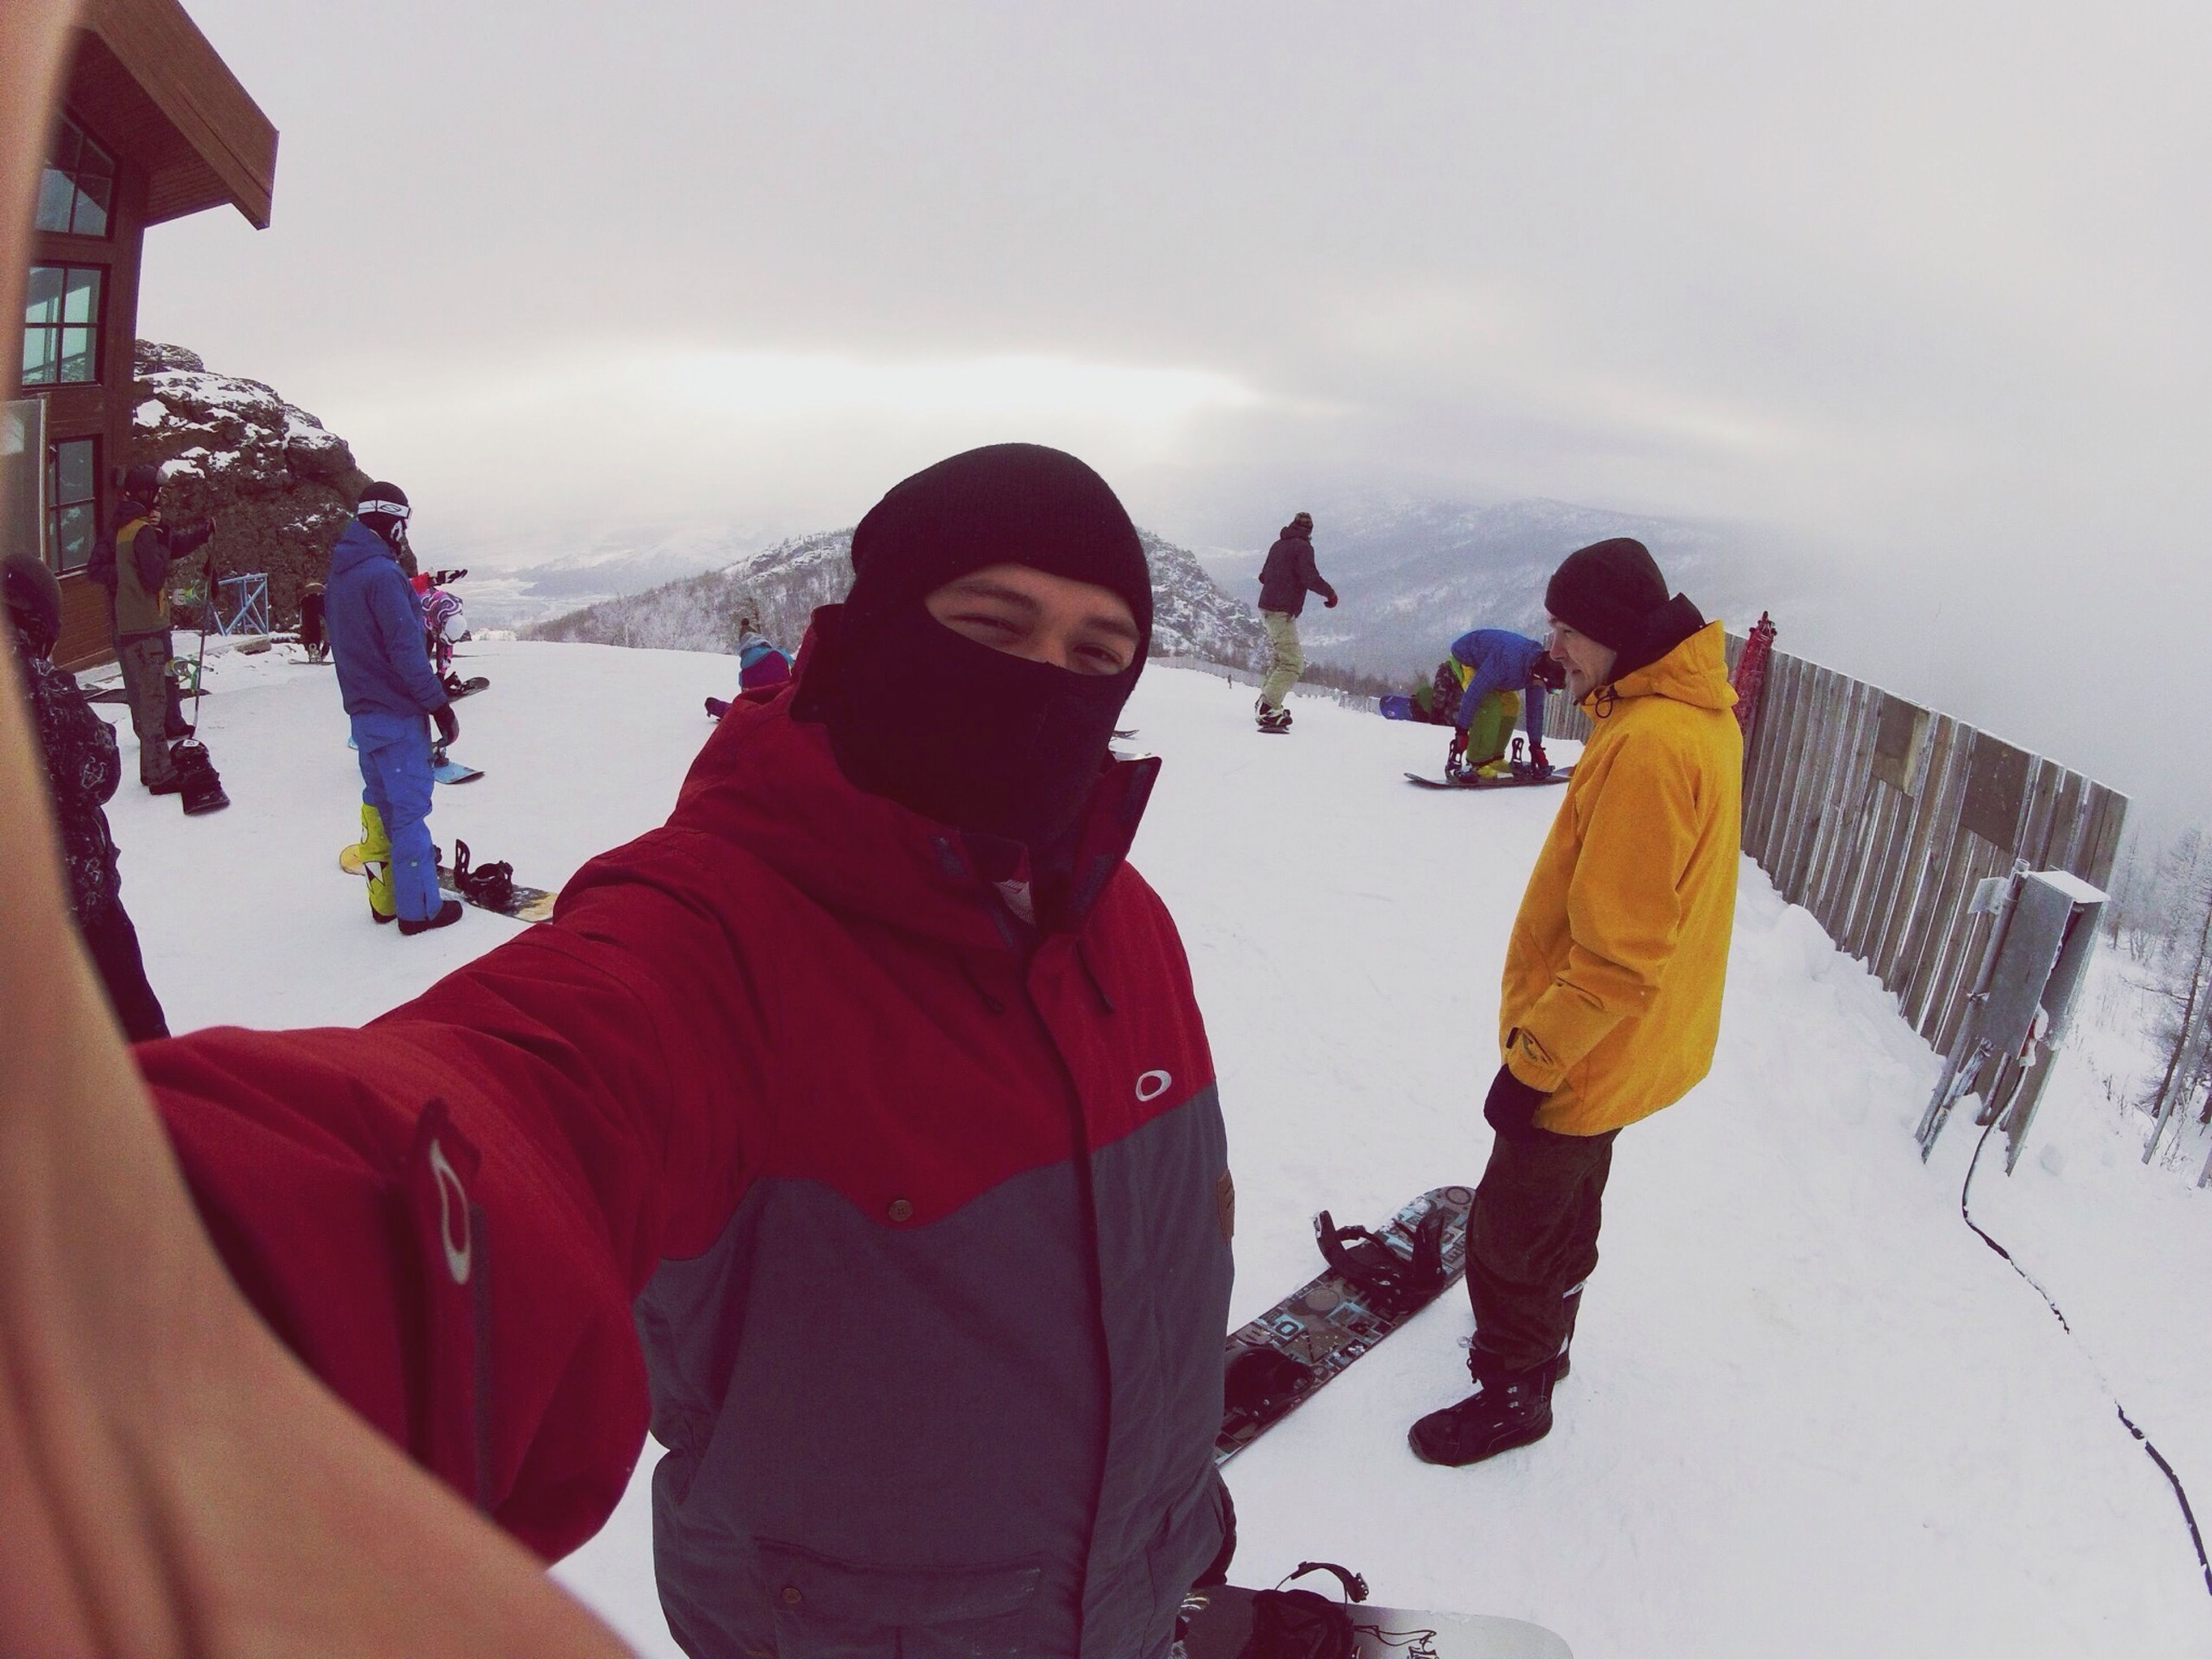 lifestyles, togetherness, leisure activity, casual clothing, bonding, winter, warm clothing, love, standing, cold temperature, rear view, men, snow, sky, season, full length, three quarter length, boys